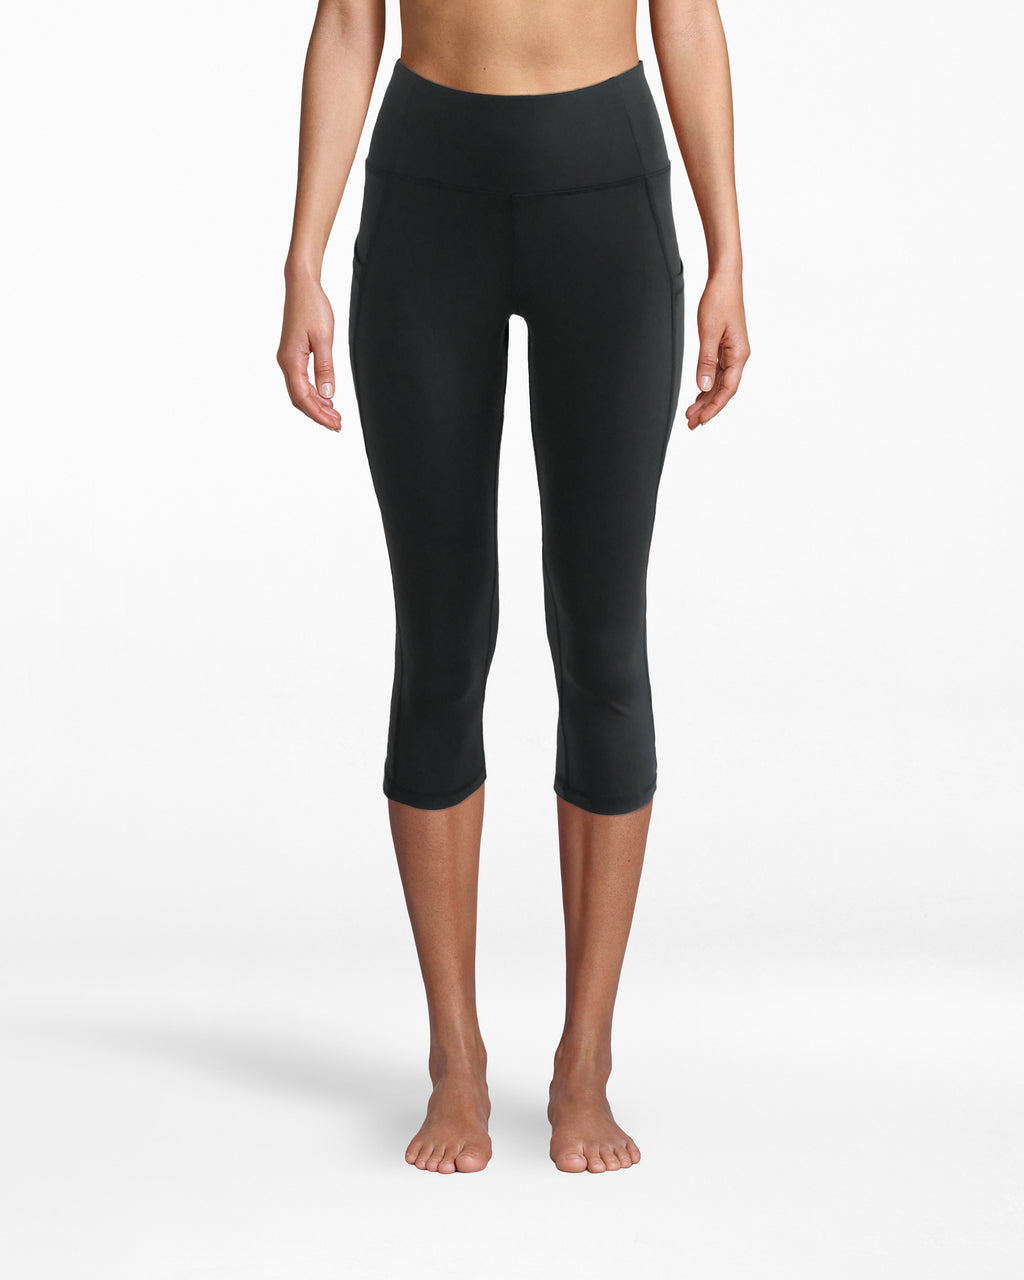 N8ZN001 - Solid Capri Legging - activewear - activewear bottoms - Ideal for yoga or any lazy day. Our Slim Capri 19 inch compression legging fits smoothly onto your form. The high waistband is comfortable yet structured. The fit makes motion feel free and effortless.